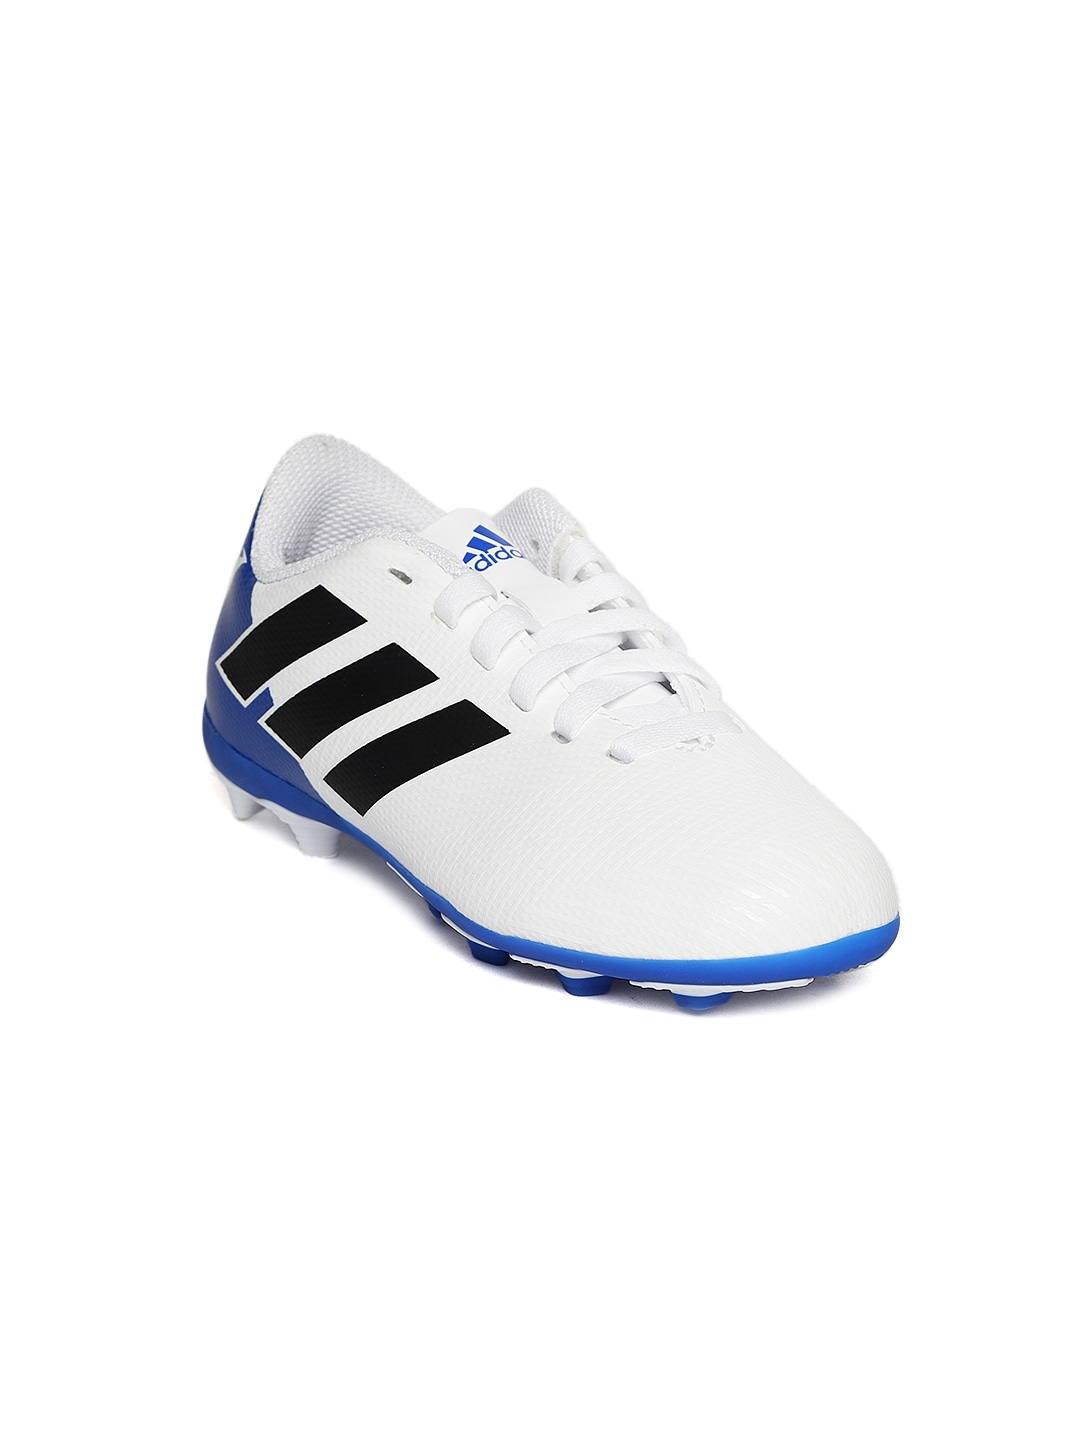 new concept f2076 a5588 Adidas Boys Girls - Buy Adidas Boys Girls online in India